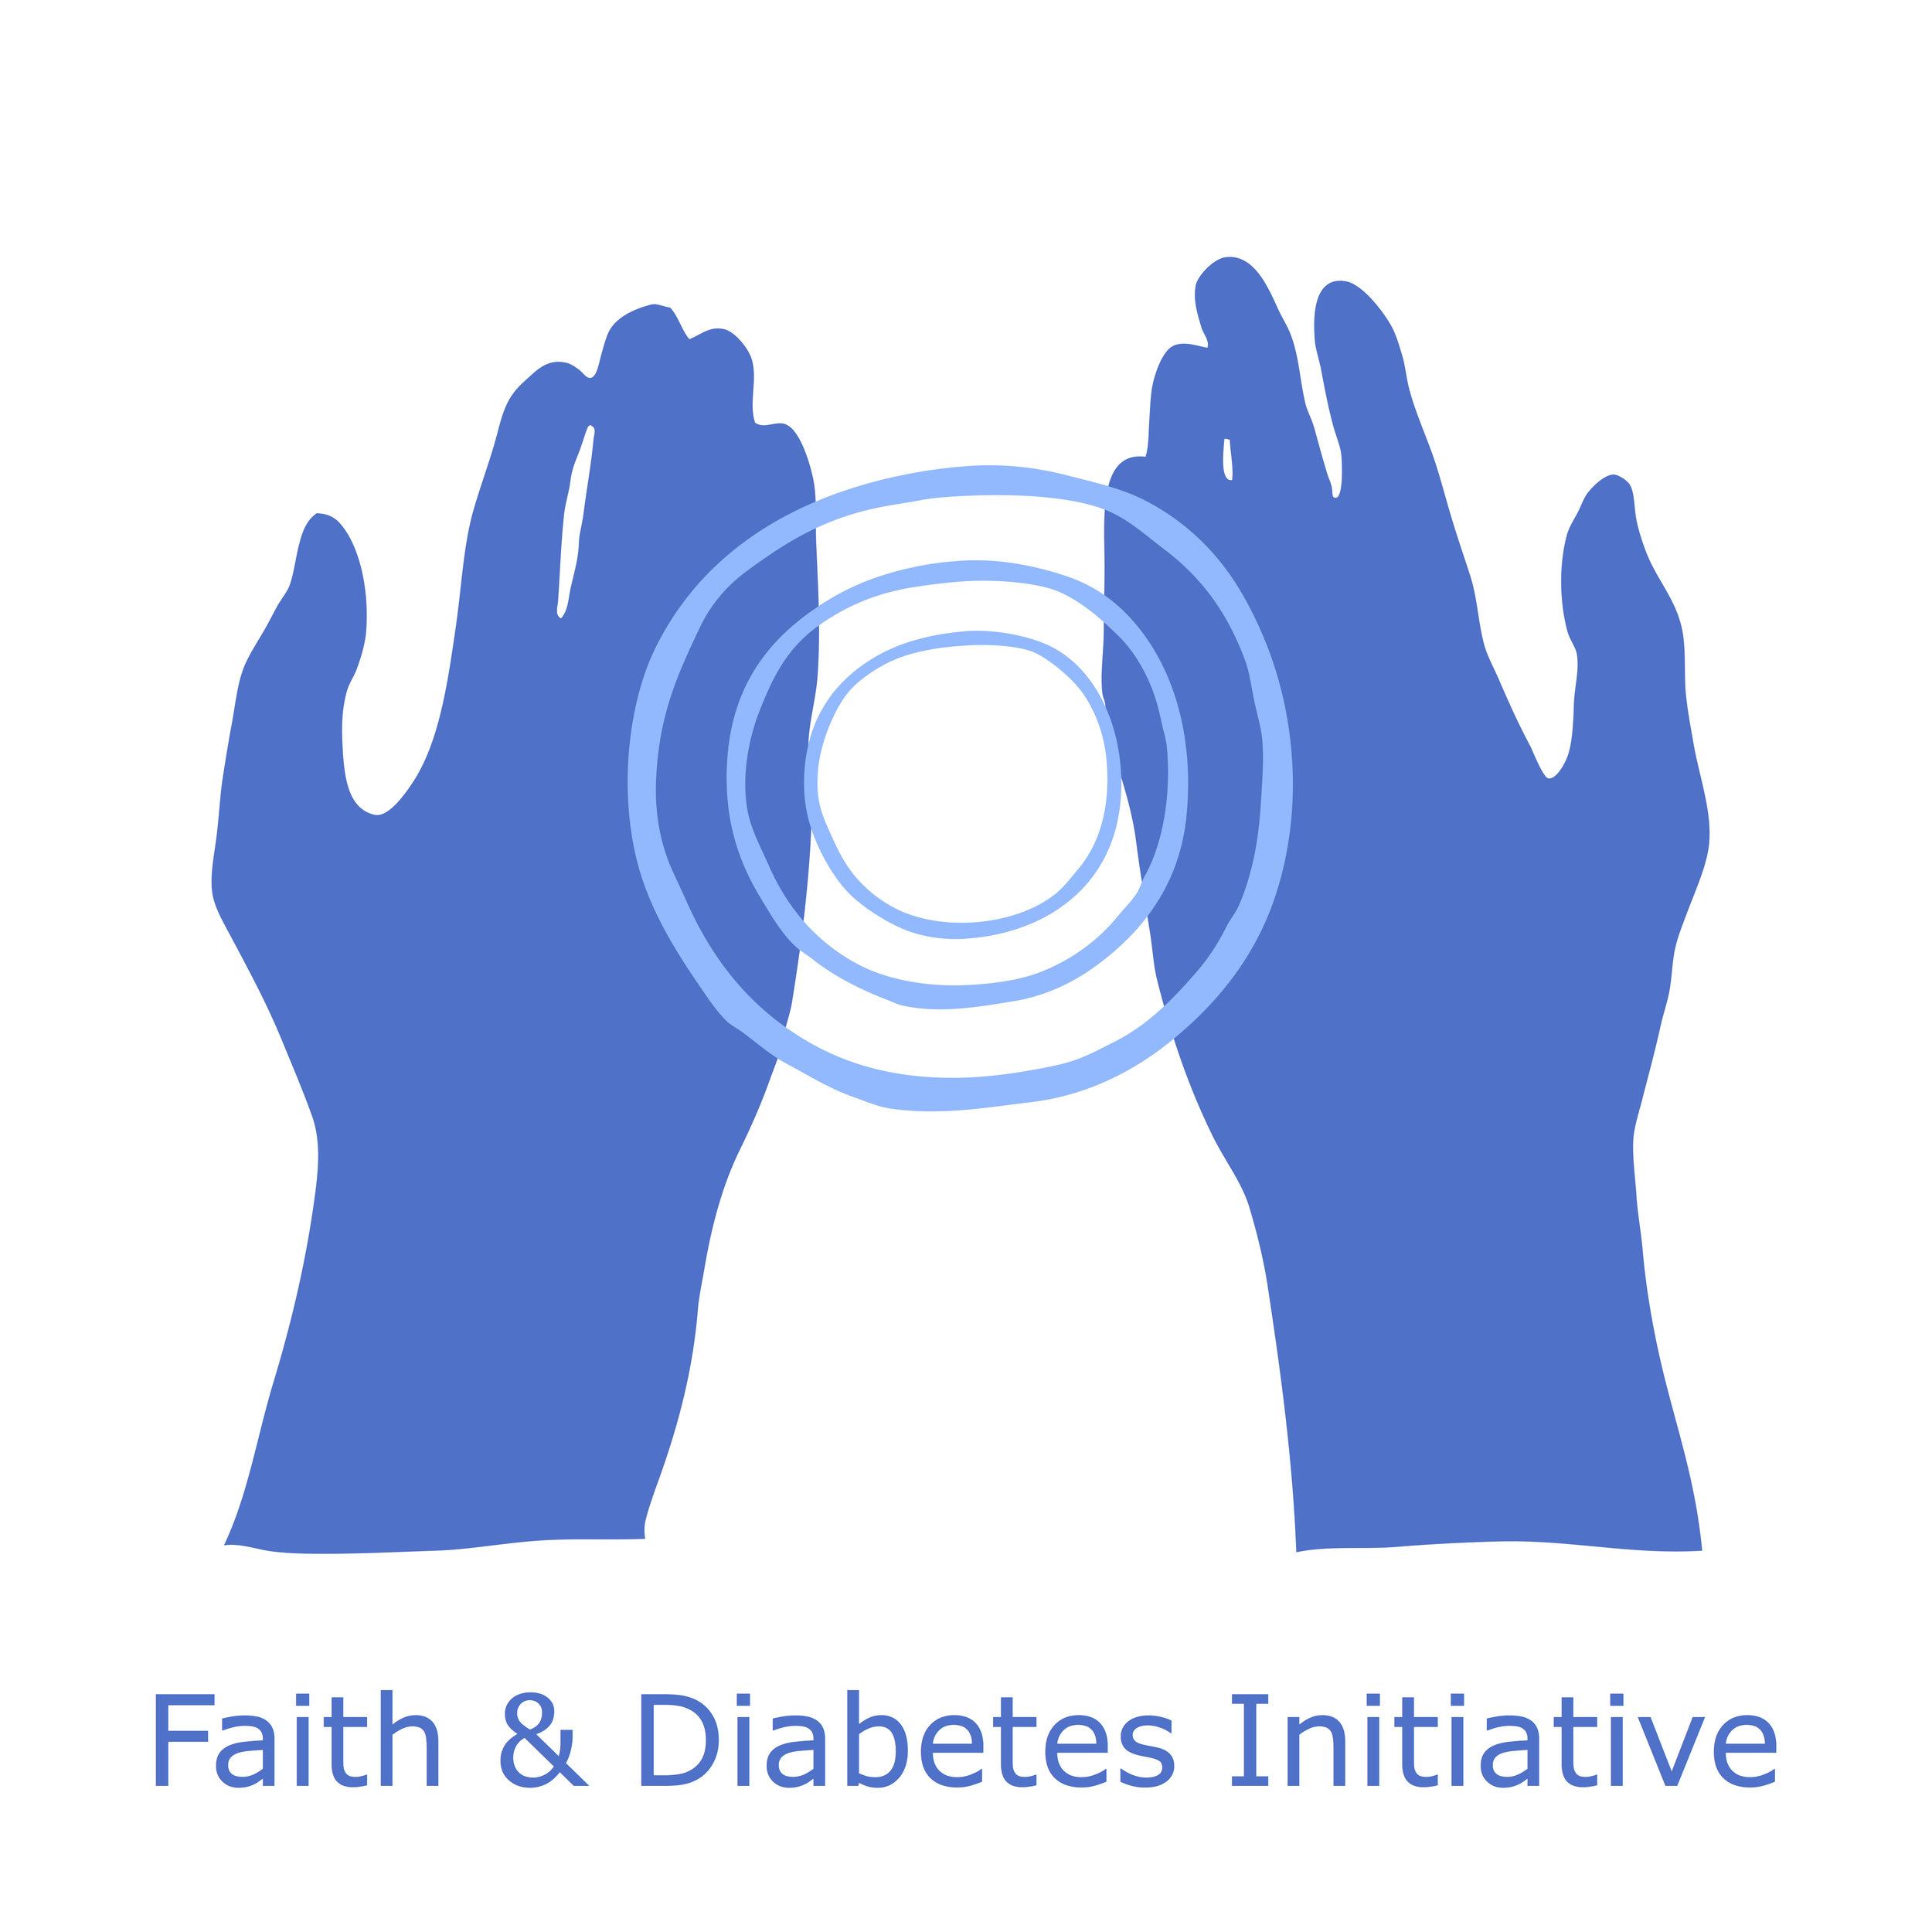 Faith & Diabetes Initiative - Empowering diverse communities of faith to implement chronic disease prevention and self-management programs.LEARN MORE